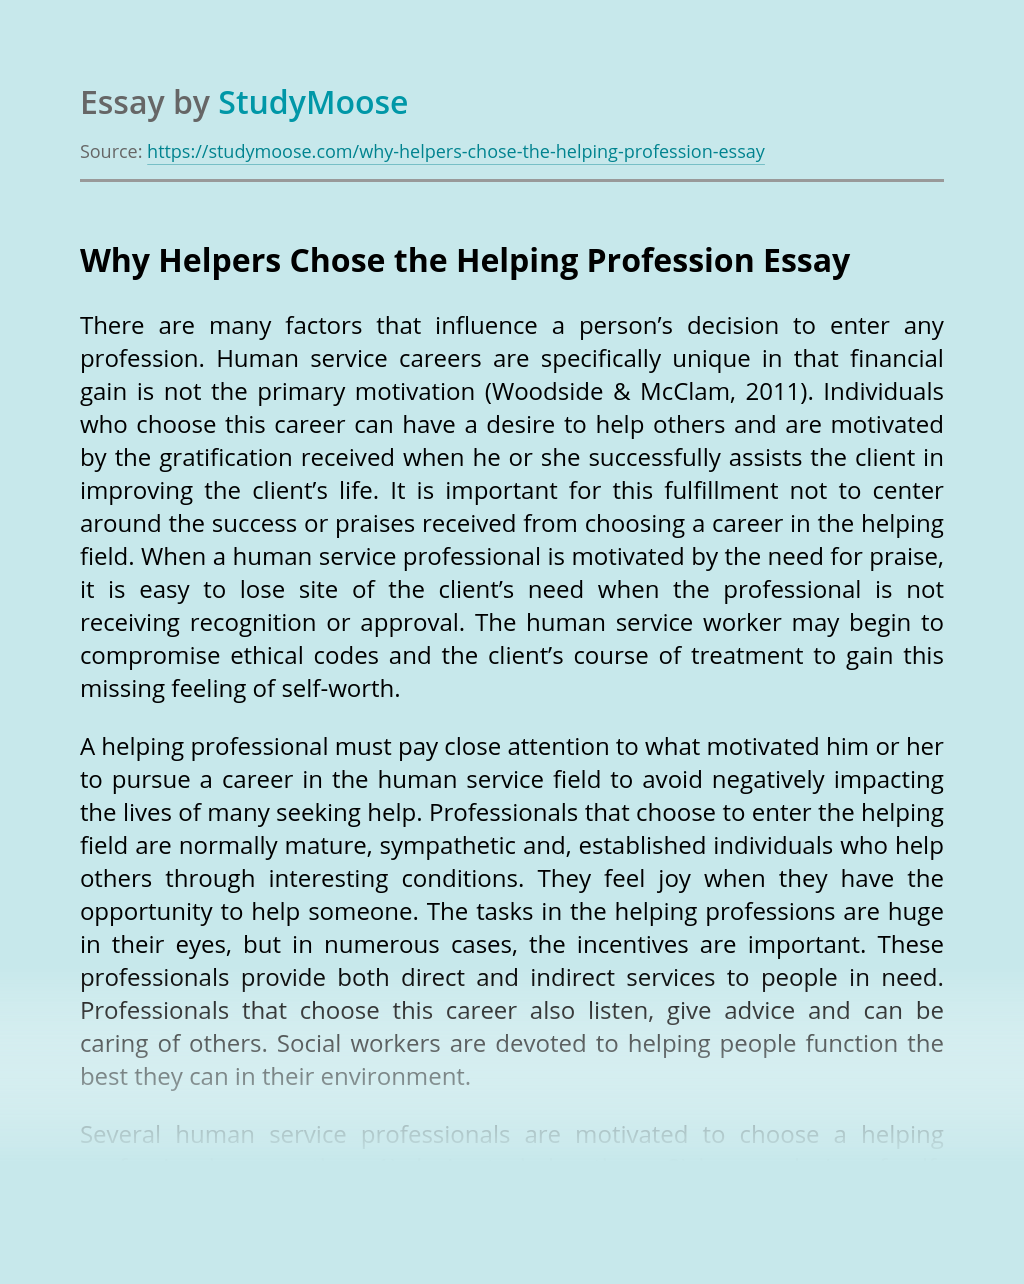 Why Helpers Chose the Helping Profession